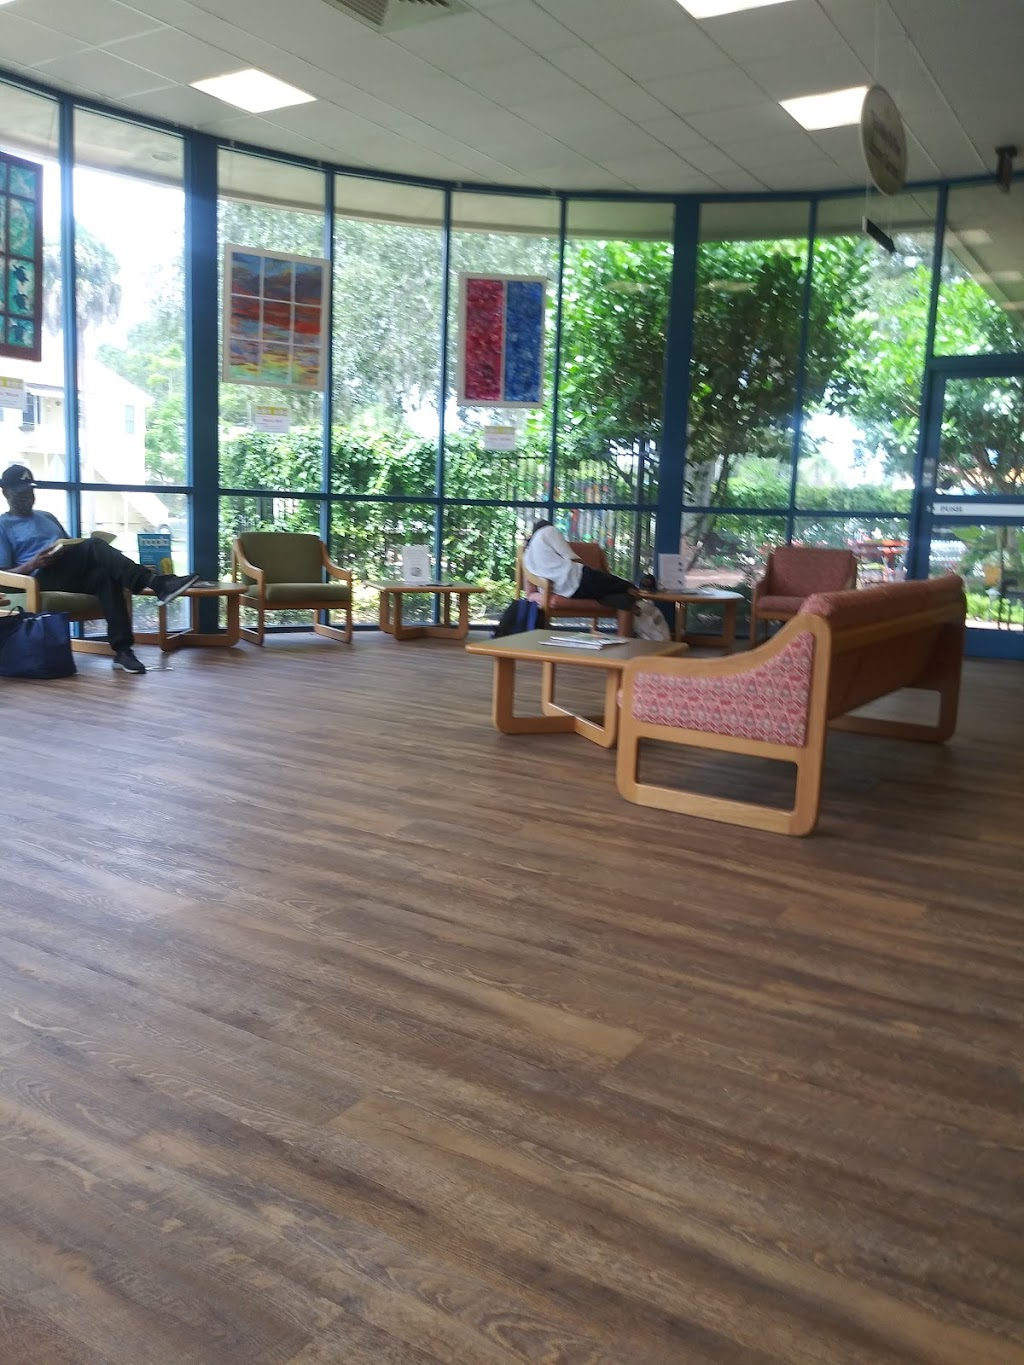 Gulfport Public Library - library    Photo 10 of 10   Address: 5501 28th Ave S, Gulfport, FL 33707, USA   Phone: (727) 893-1074